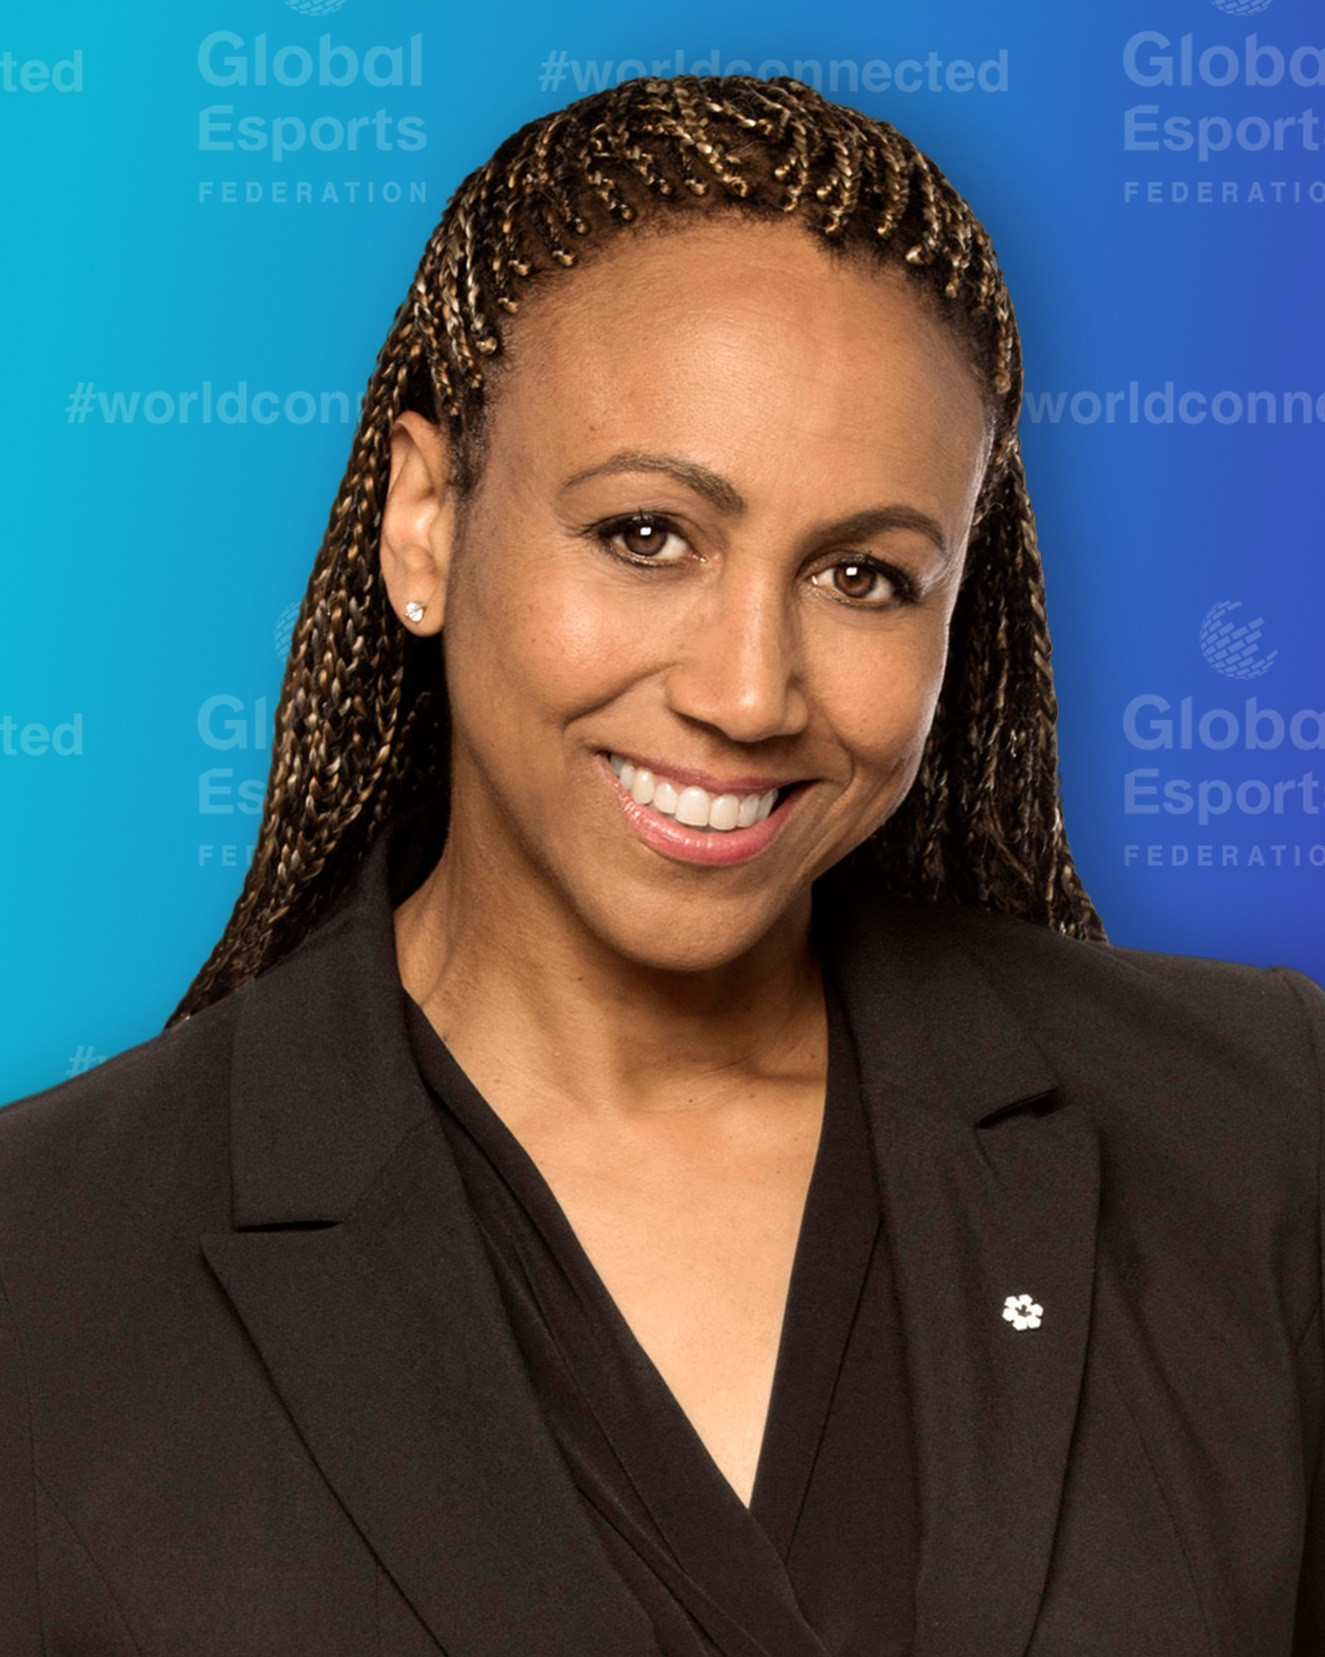 Charmaine Crooks has been appointed as the chair of the Global Esports Federation's new Athletes and Players Commission ©Global Esports Federation